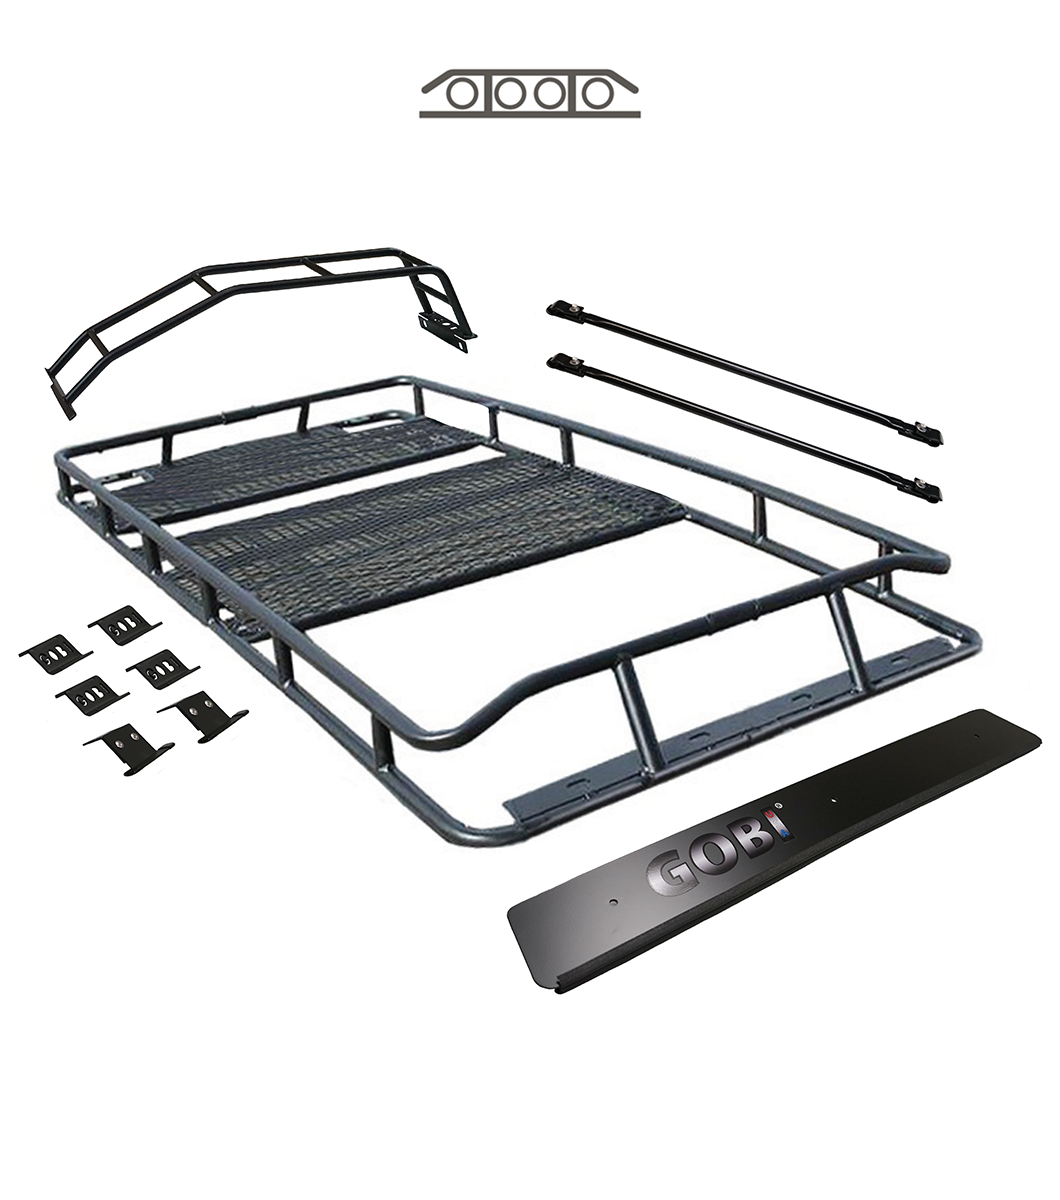 Gobi - Ranger Rack - Multi Light Set Up - Sun Roof - Toyota 4Runner 5th Gen 2010-2021 - 4x4 Runners